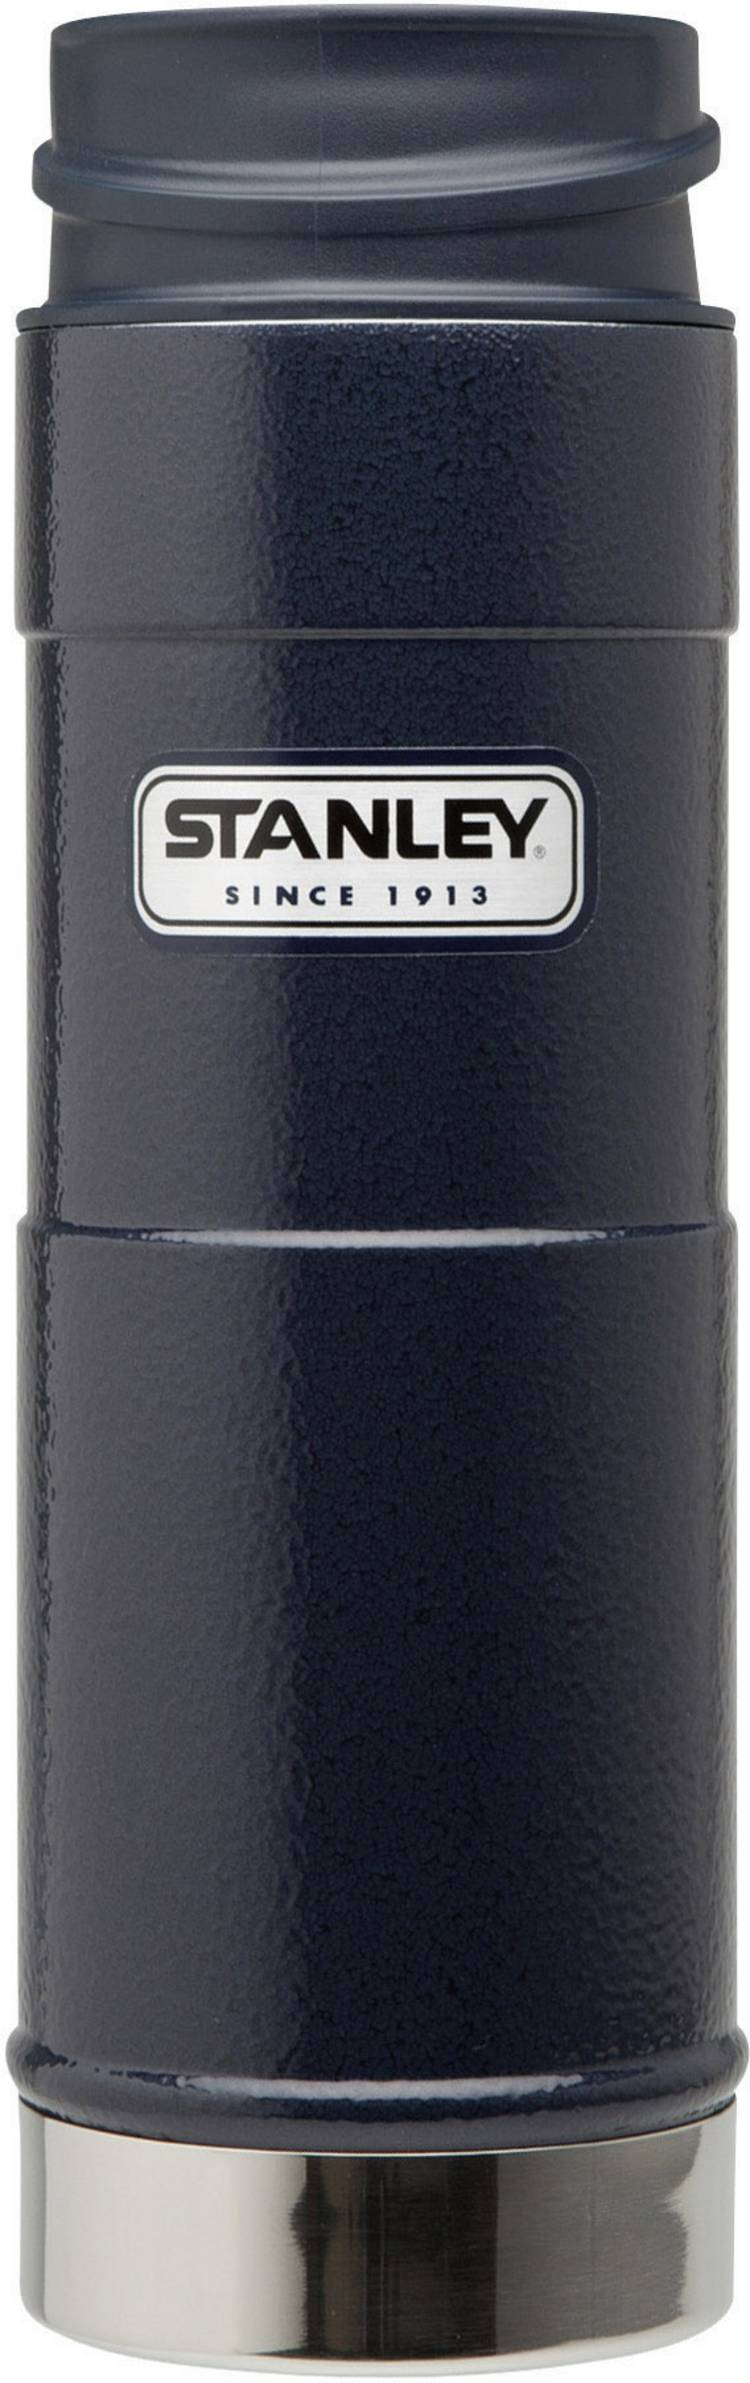 Image of Stanley Classic 10-01568-002 Thermosbeker Donkerblauw 470 ml